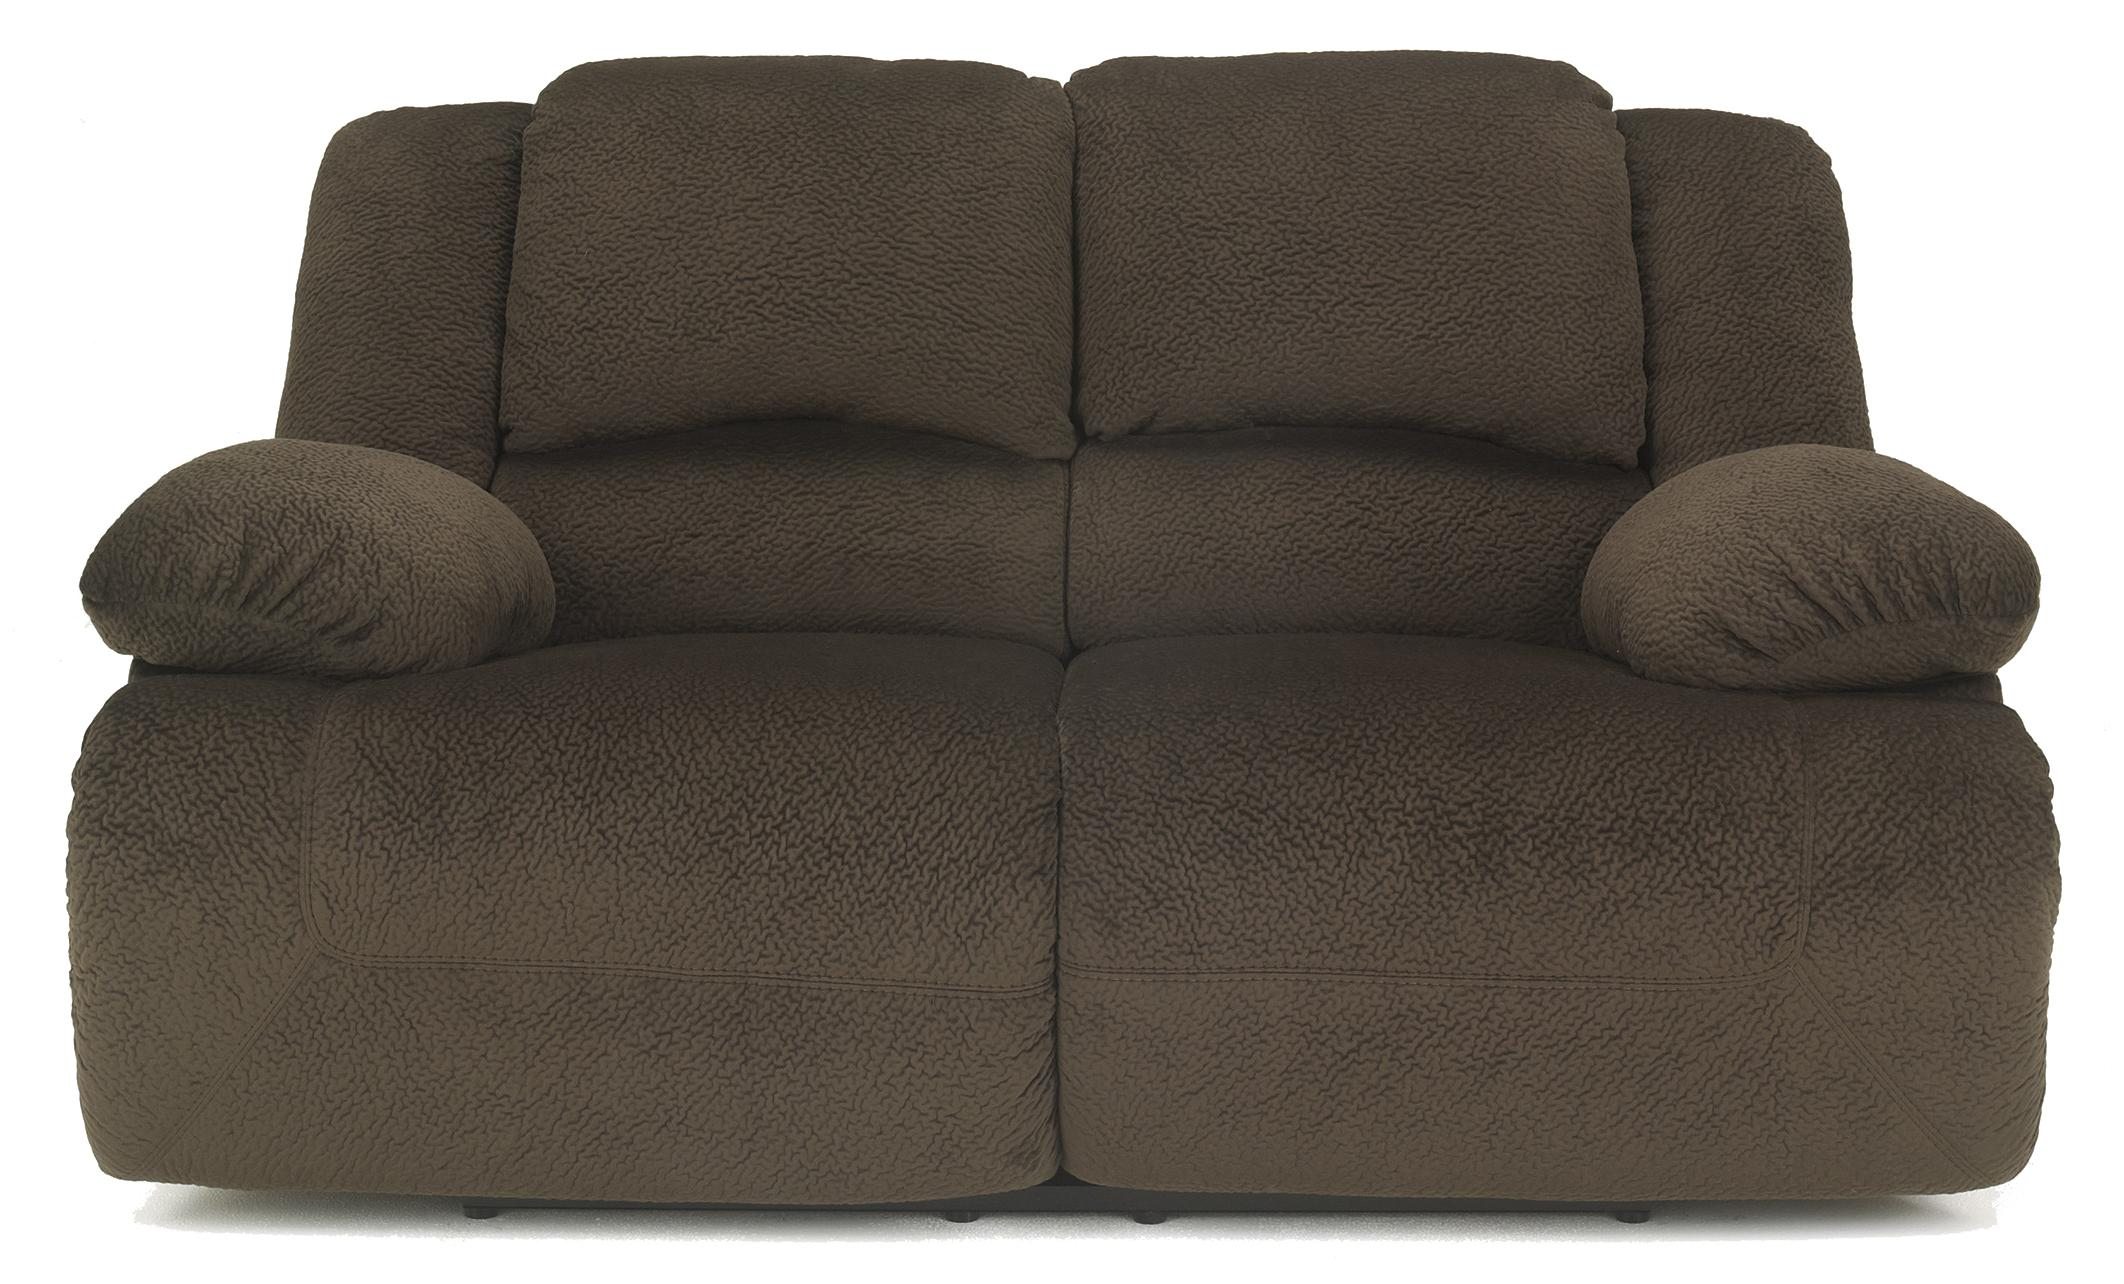 Signature Design by Ashley Toletta - Chocolate Reclining Power Loveseat - Item Number: 5670174